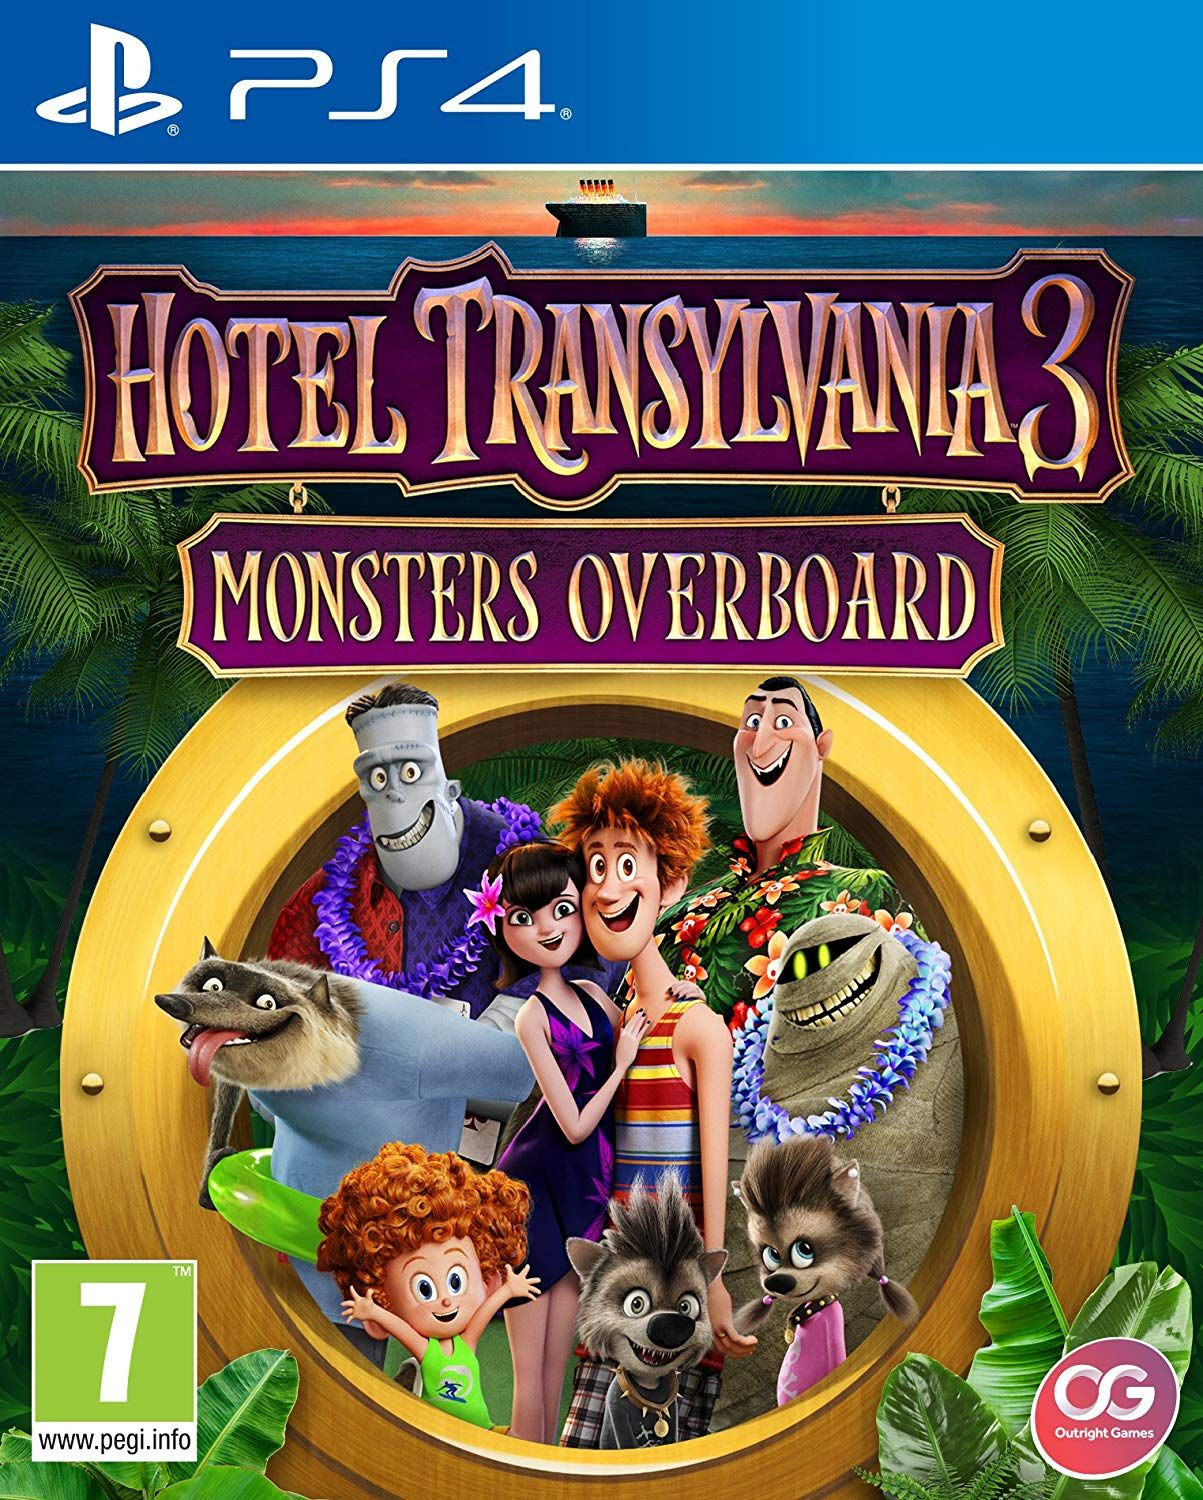 Hotel Transylvania 3 Monster Overboard (PS4)